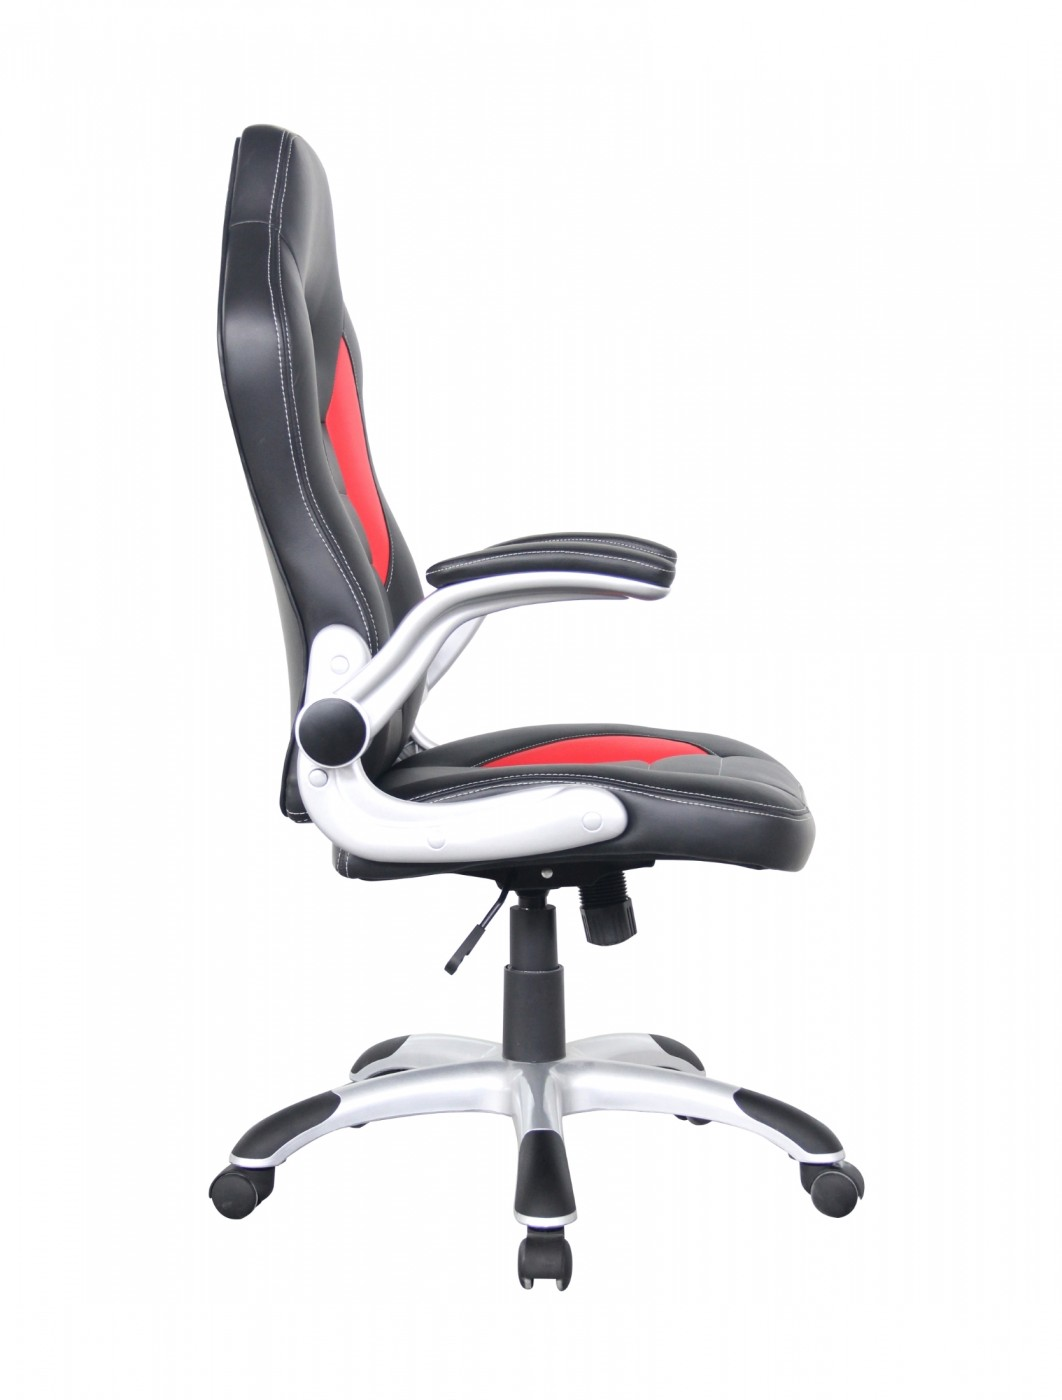 red office chairs. Red Office Chairs. Talladega Black And Racing Style Chair Aoc8211r - Enlarged View Chairs